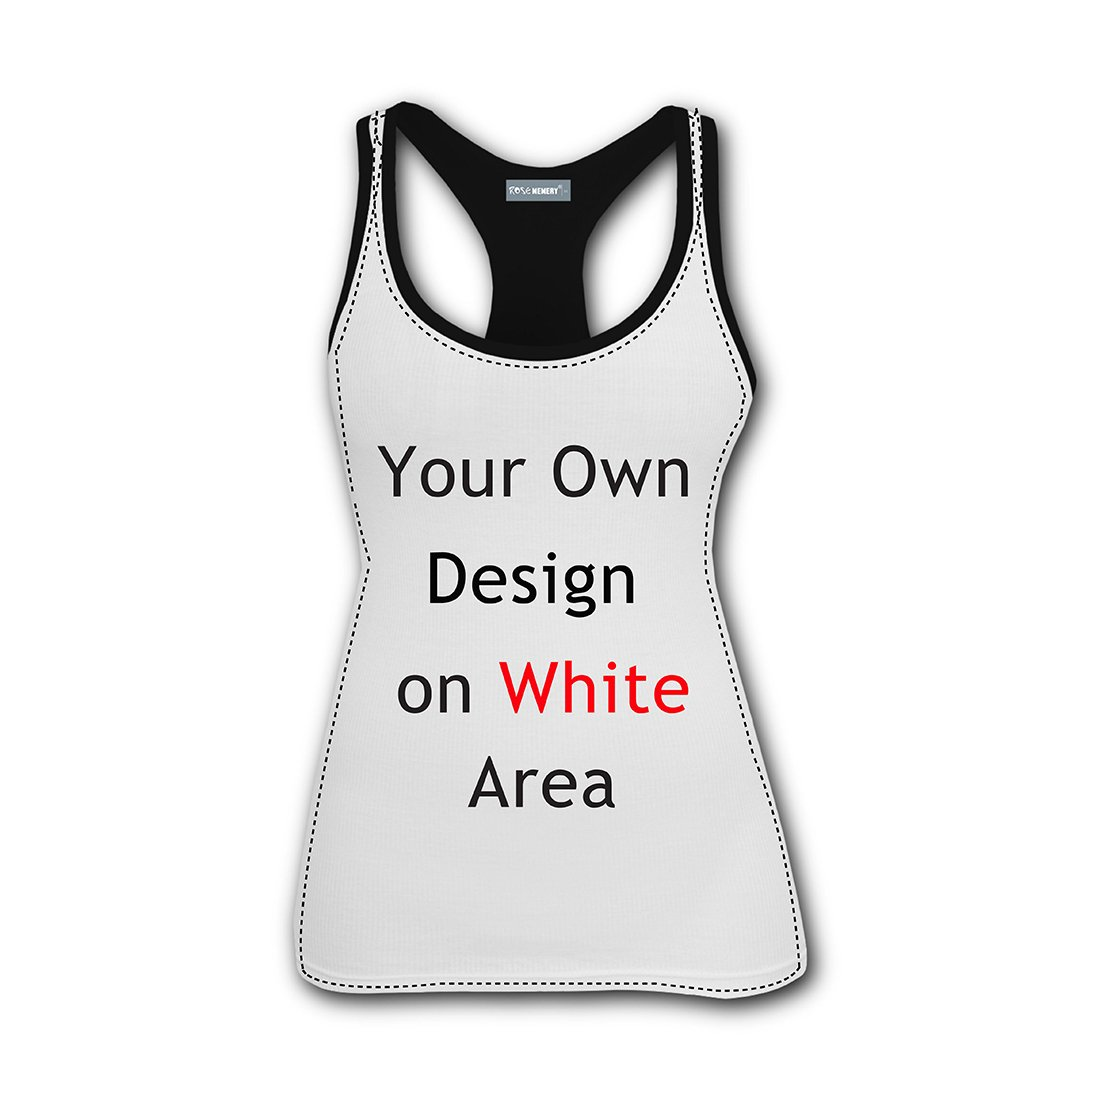 Forest Bengal Tiger Animal King 3D Print Casual Custom Sleeveless Tanks Vest Top Women Girl XL by TuNan (Image #2)